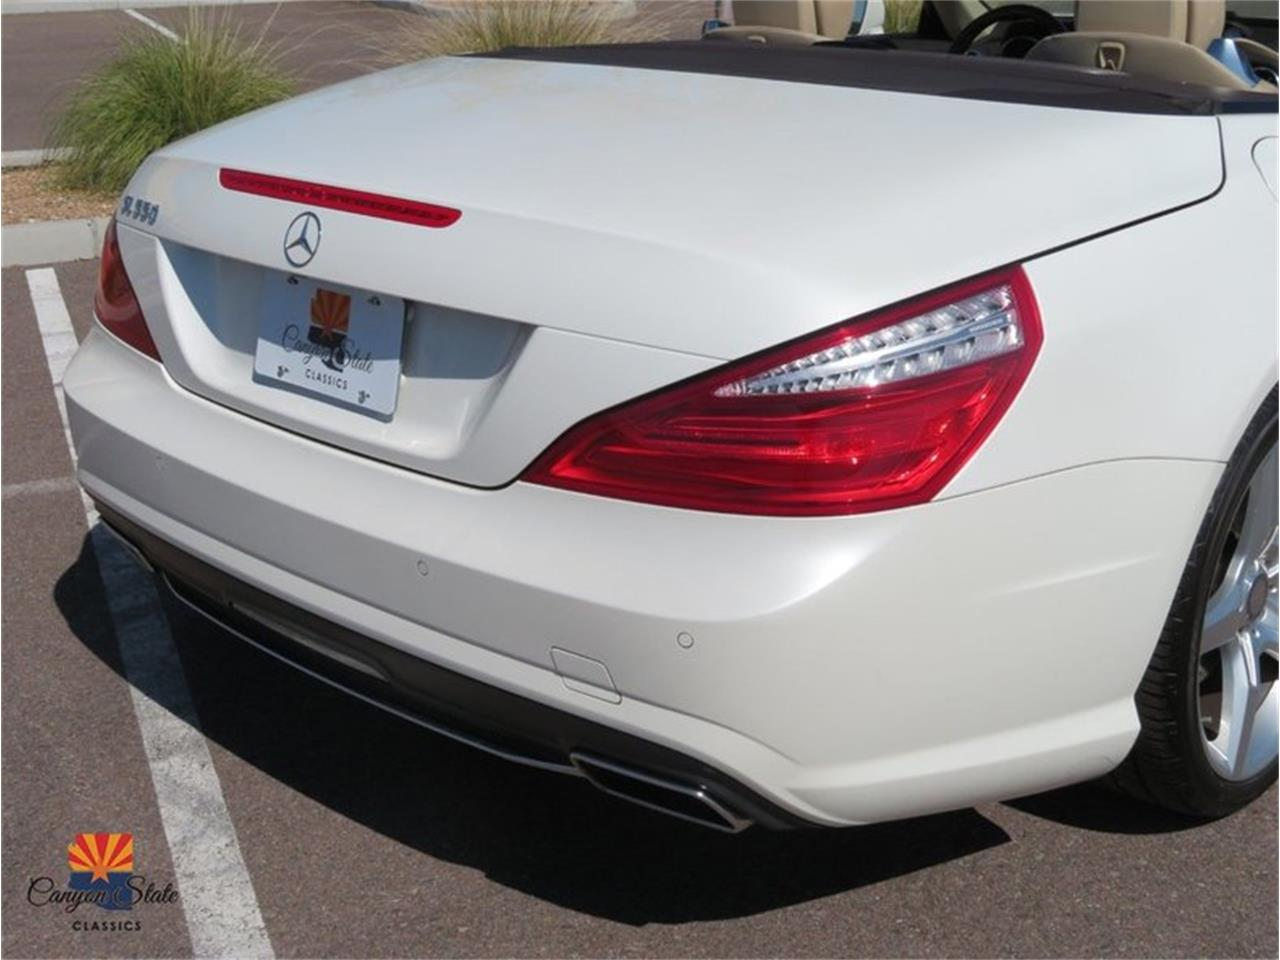 2013 Mercedes-Benz SL-Class for sale in Tempe, AZ – photo 64